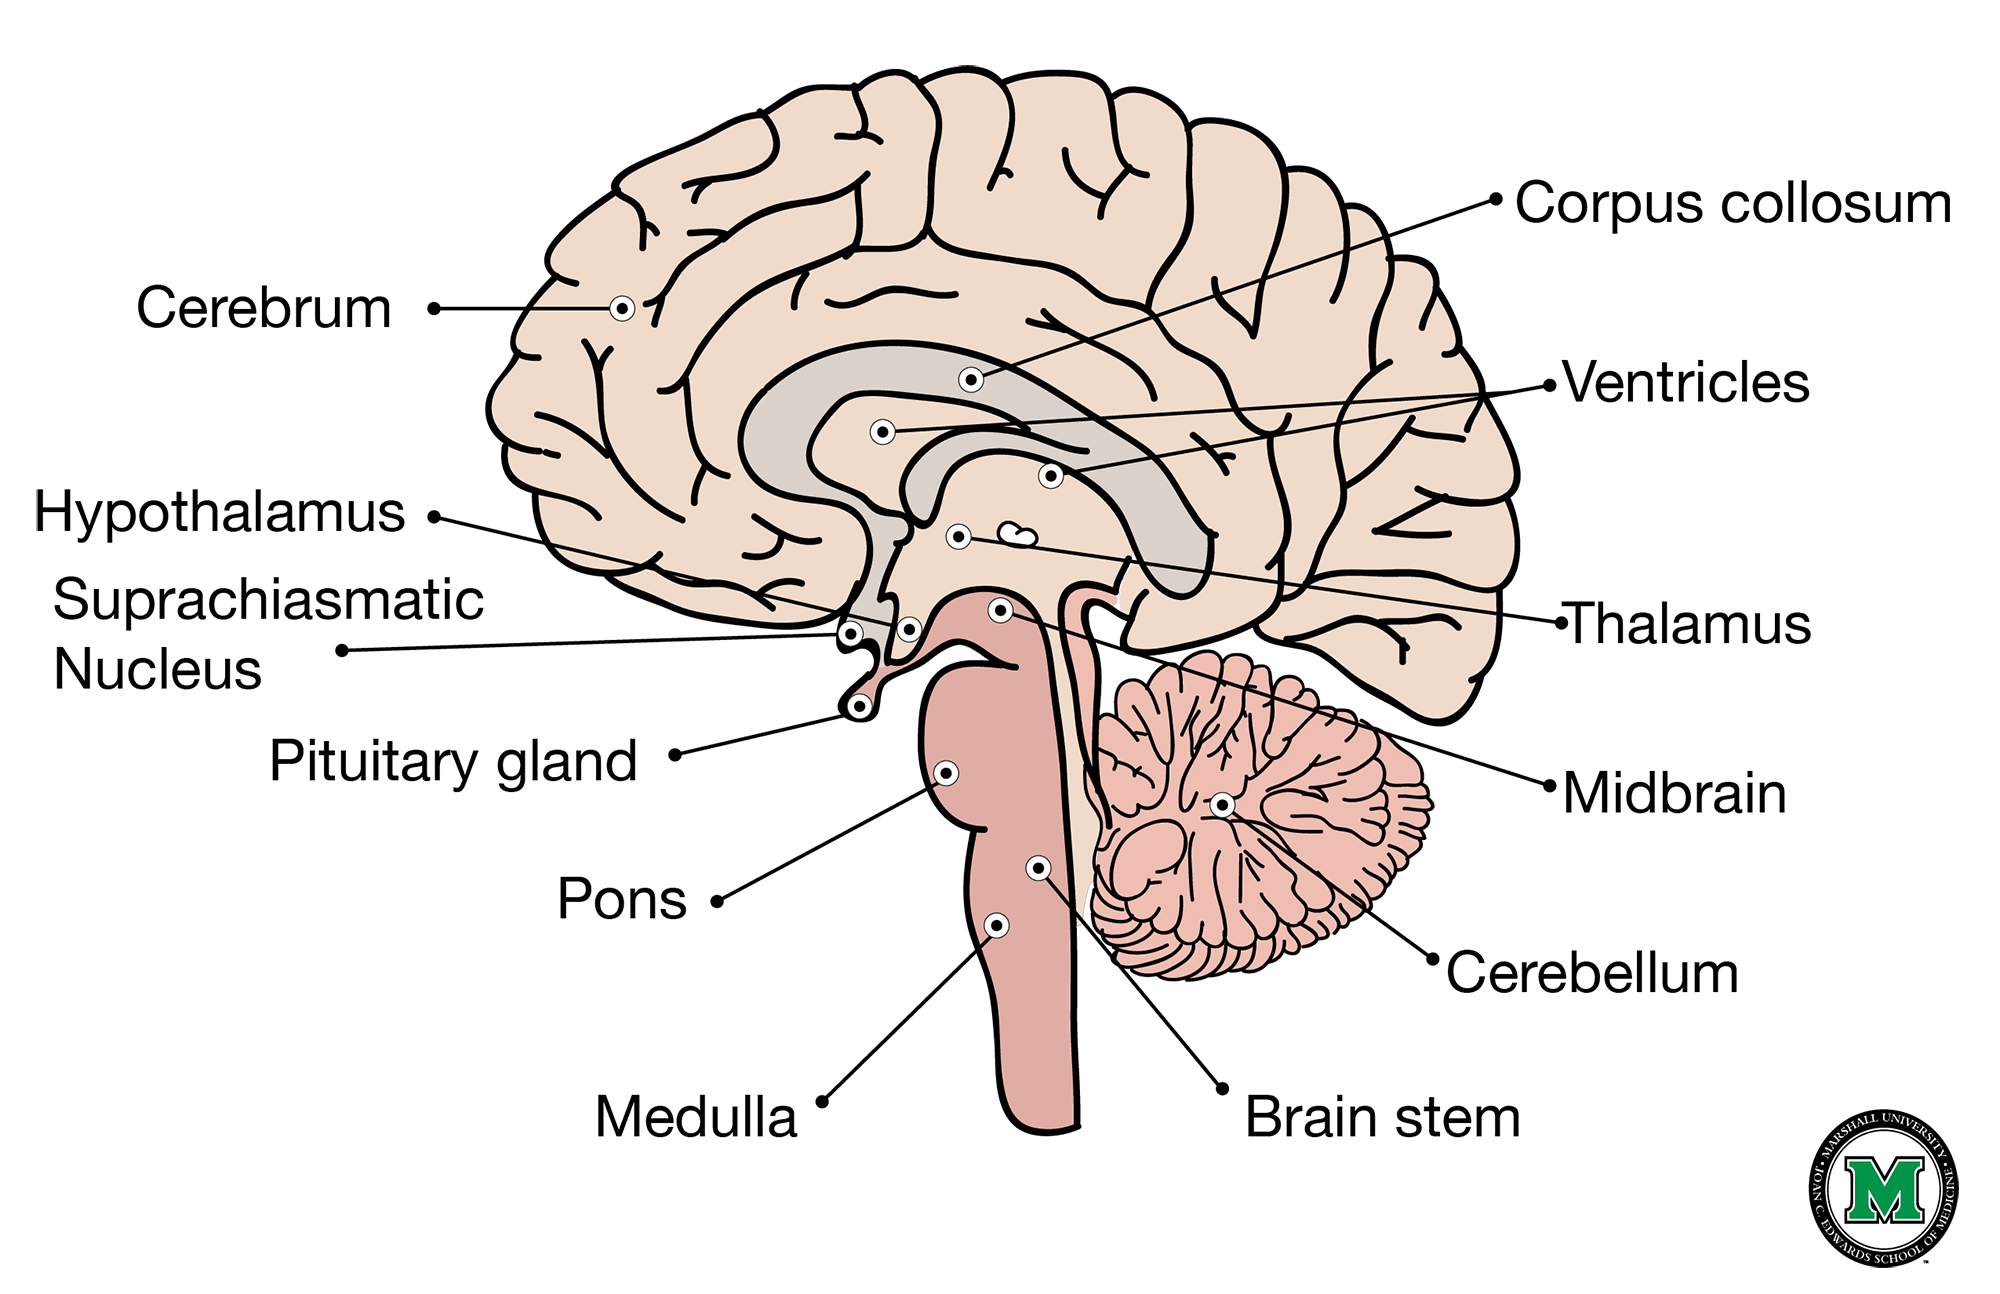 Sagittal View Of The Human Brain